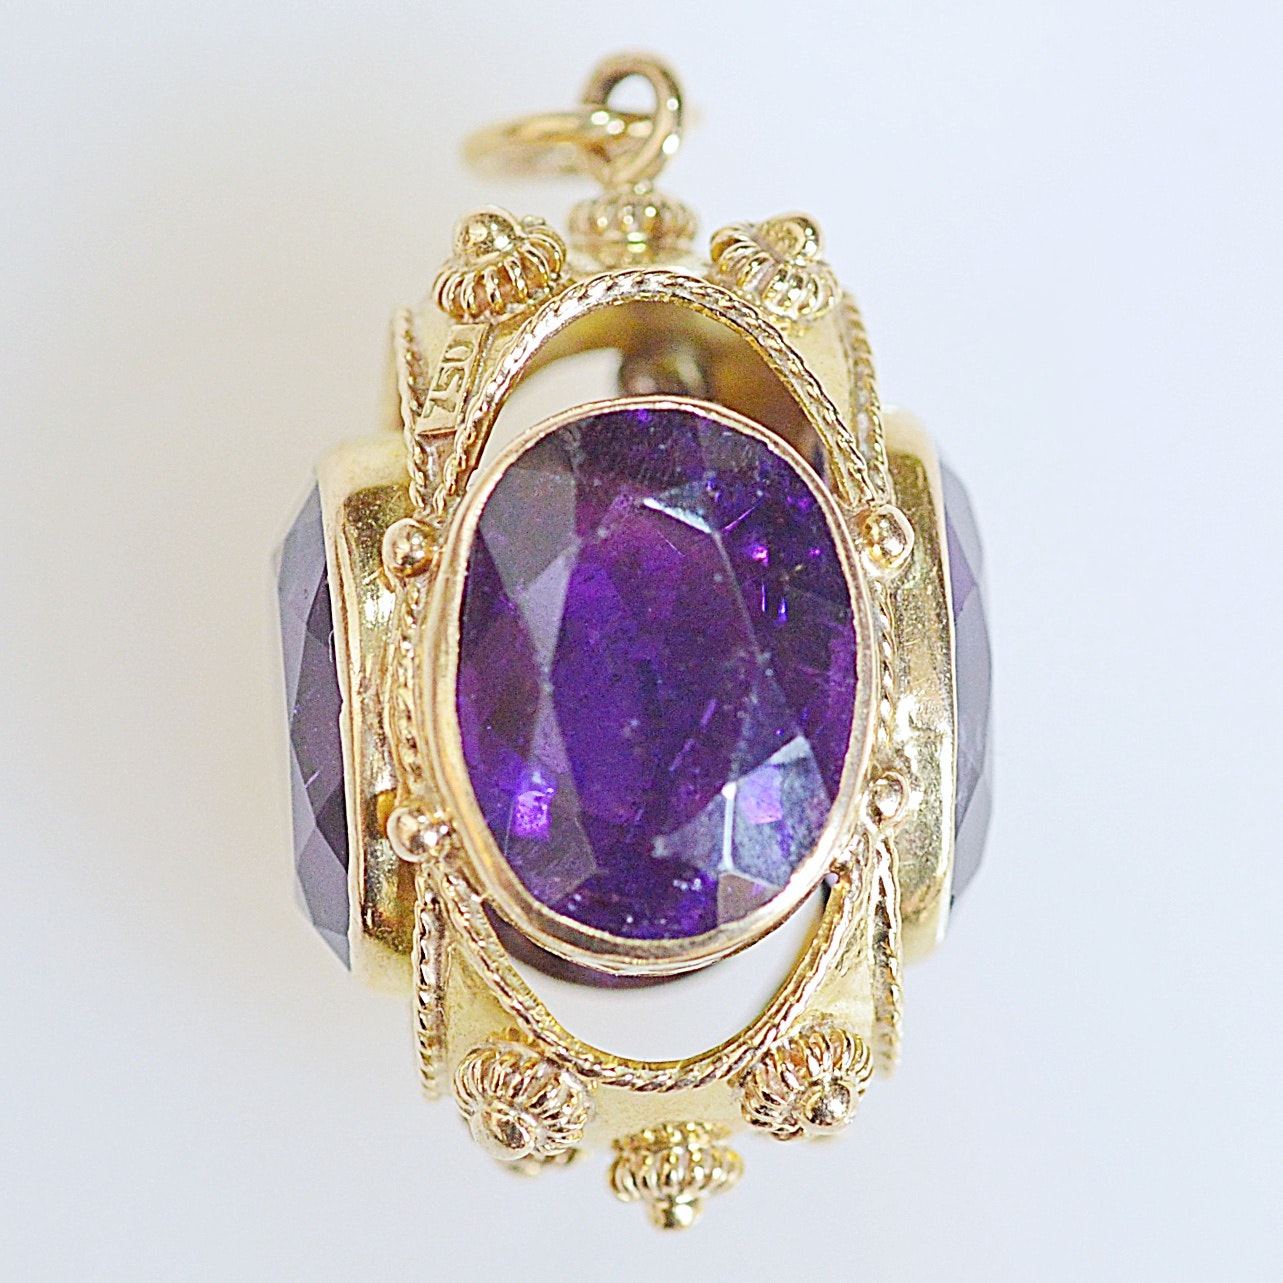 Antique 18K Yellow Gold and Amethyst Pendant